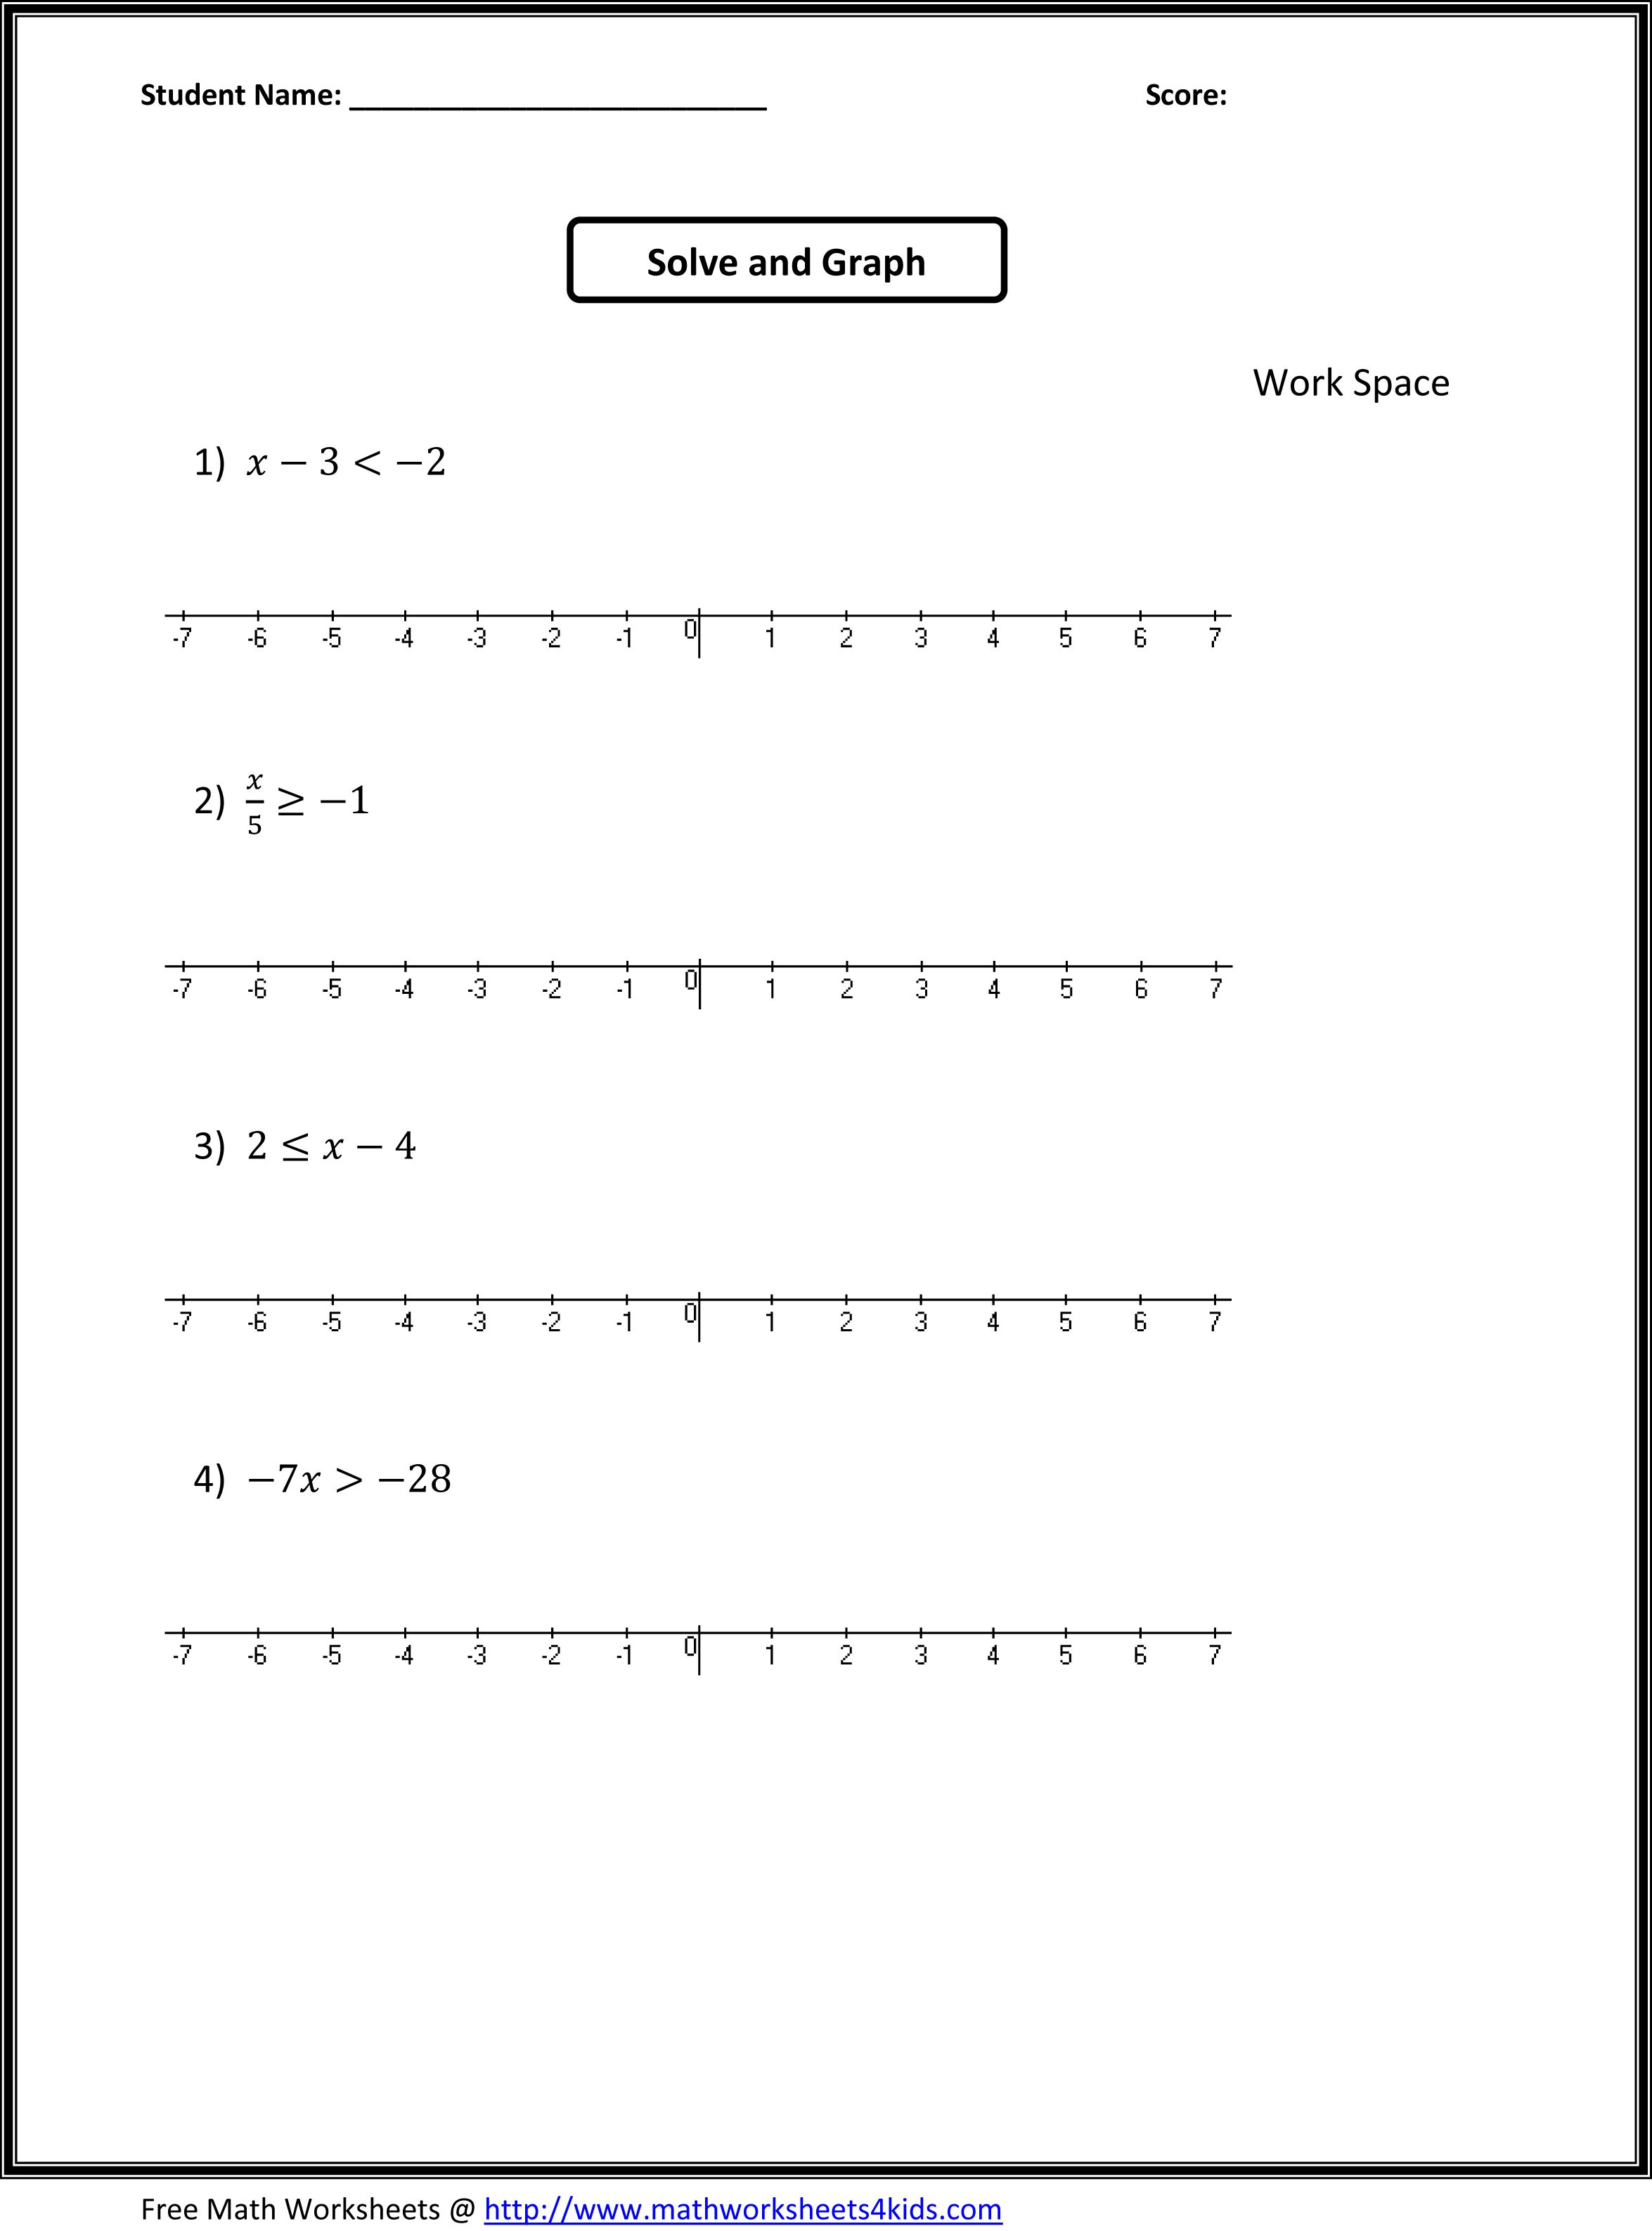 Worksheets Math Worksheet 7th Grade 7th grade math worksheets value absolute algebra worksheets